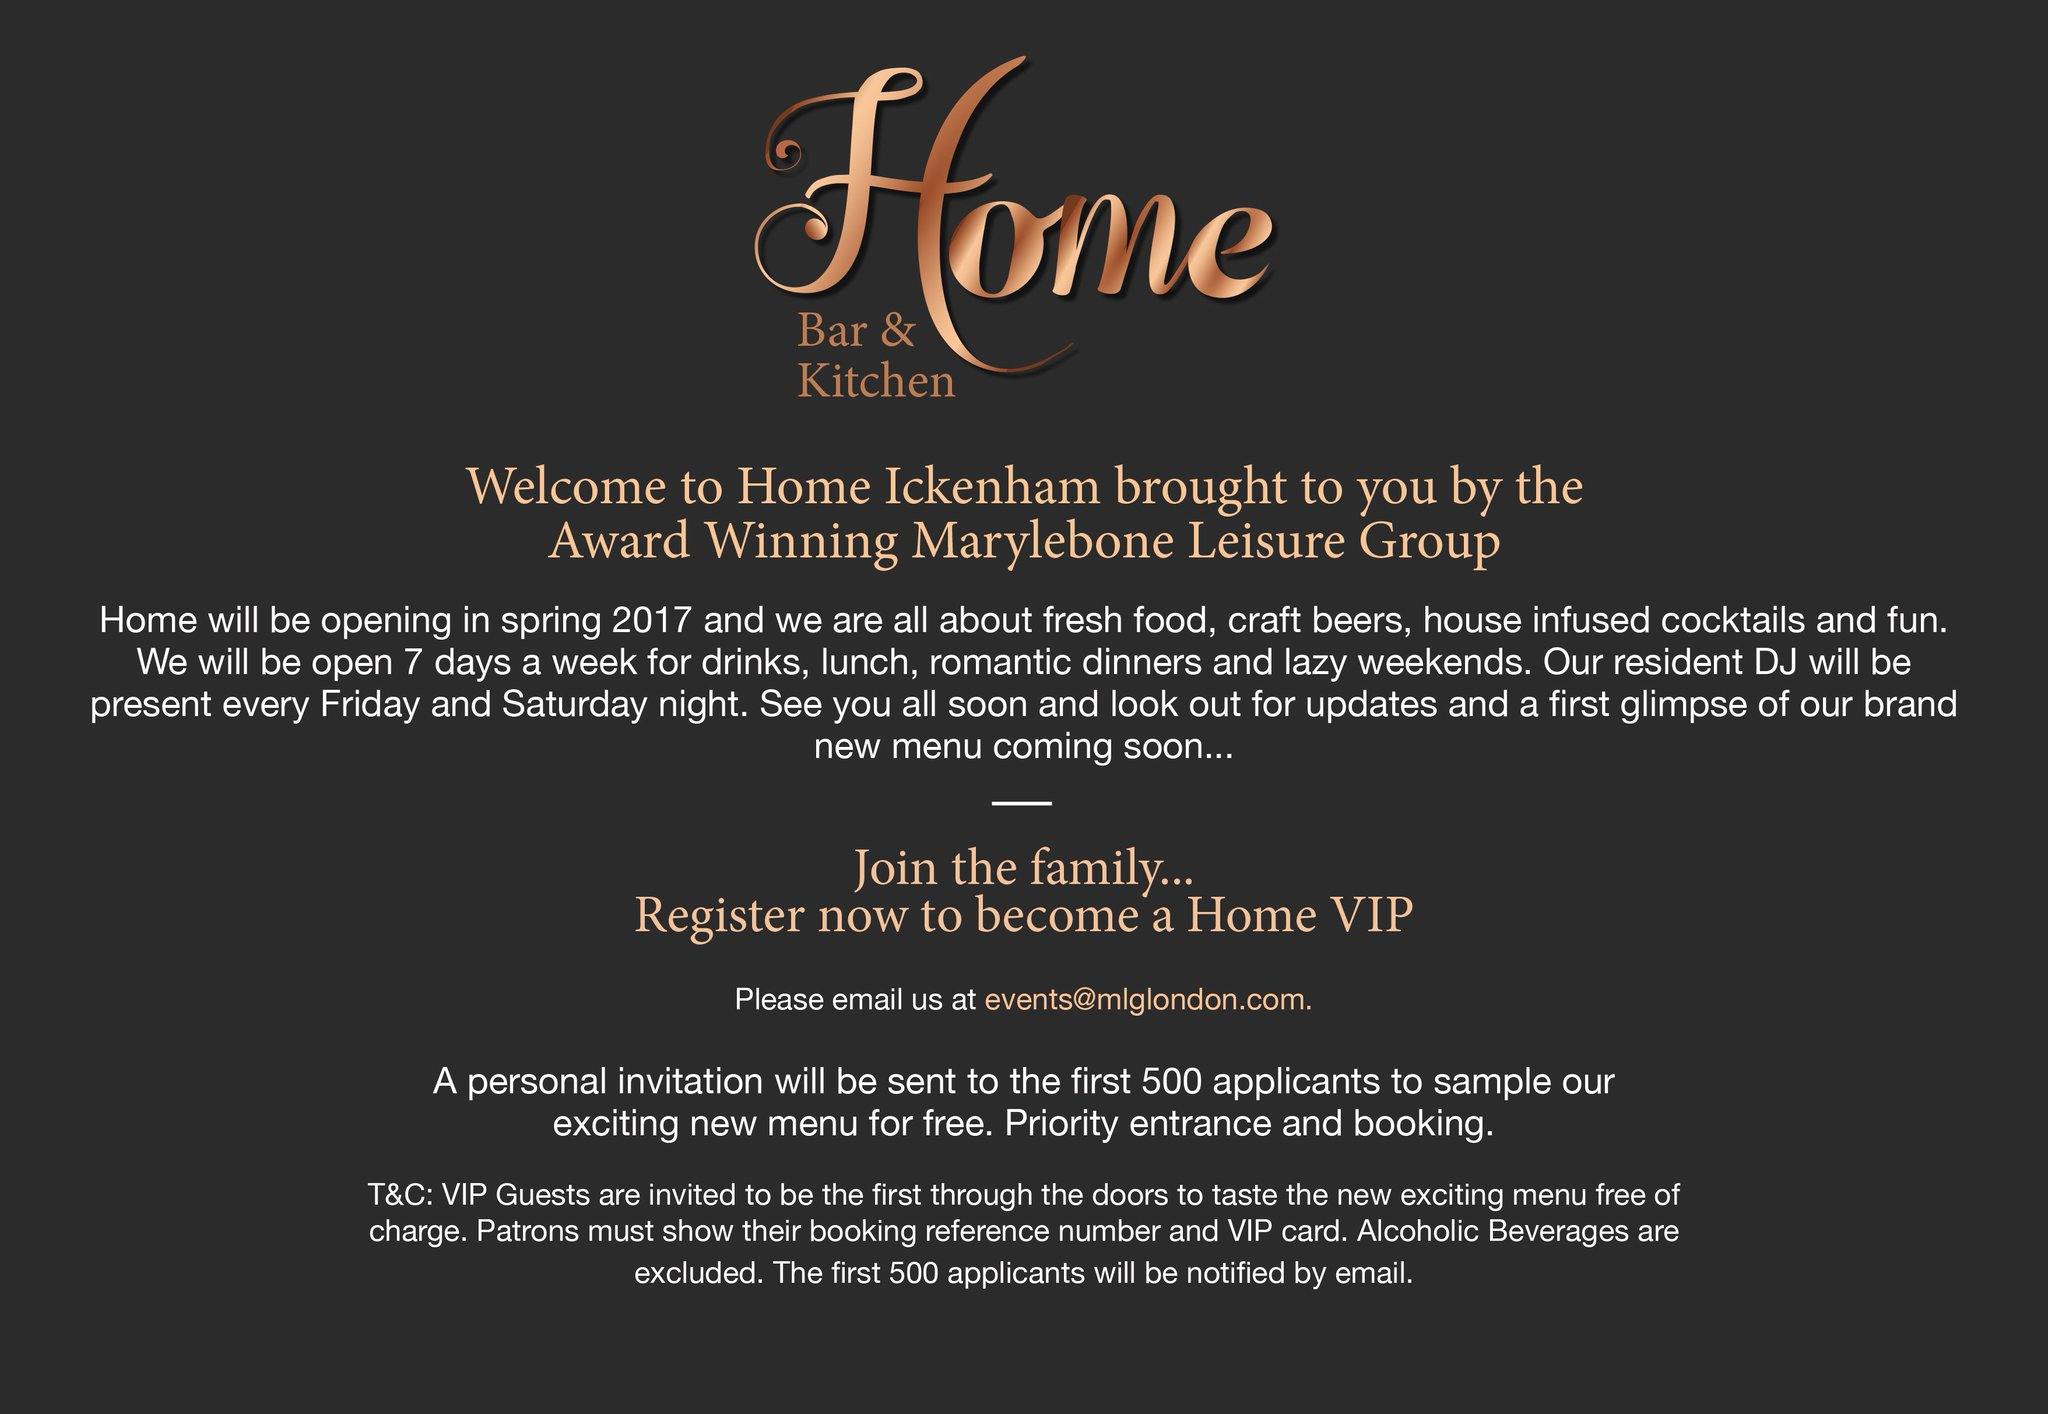 Home Bar Kitchen On Twitter Home Is Coming To Ickenham This